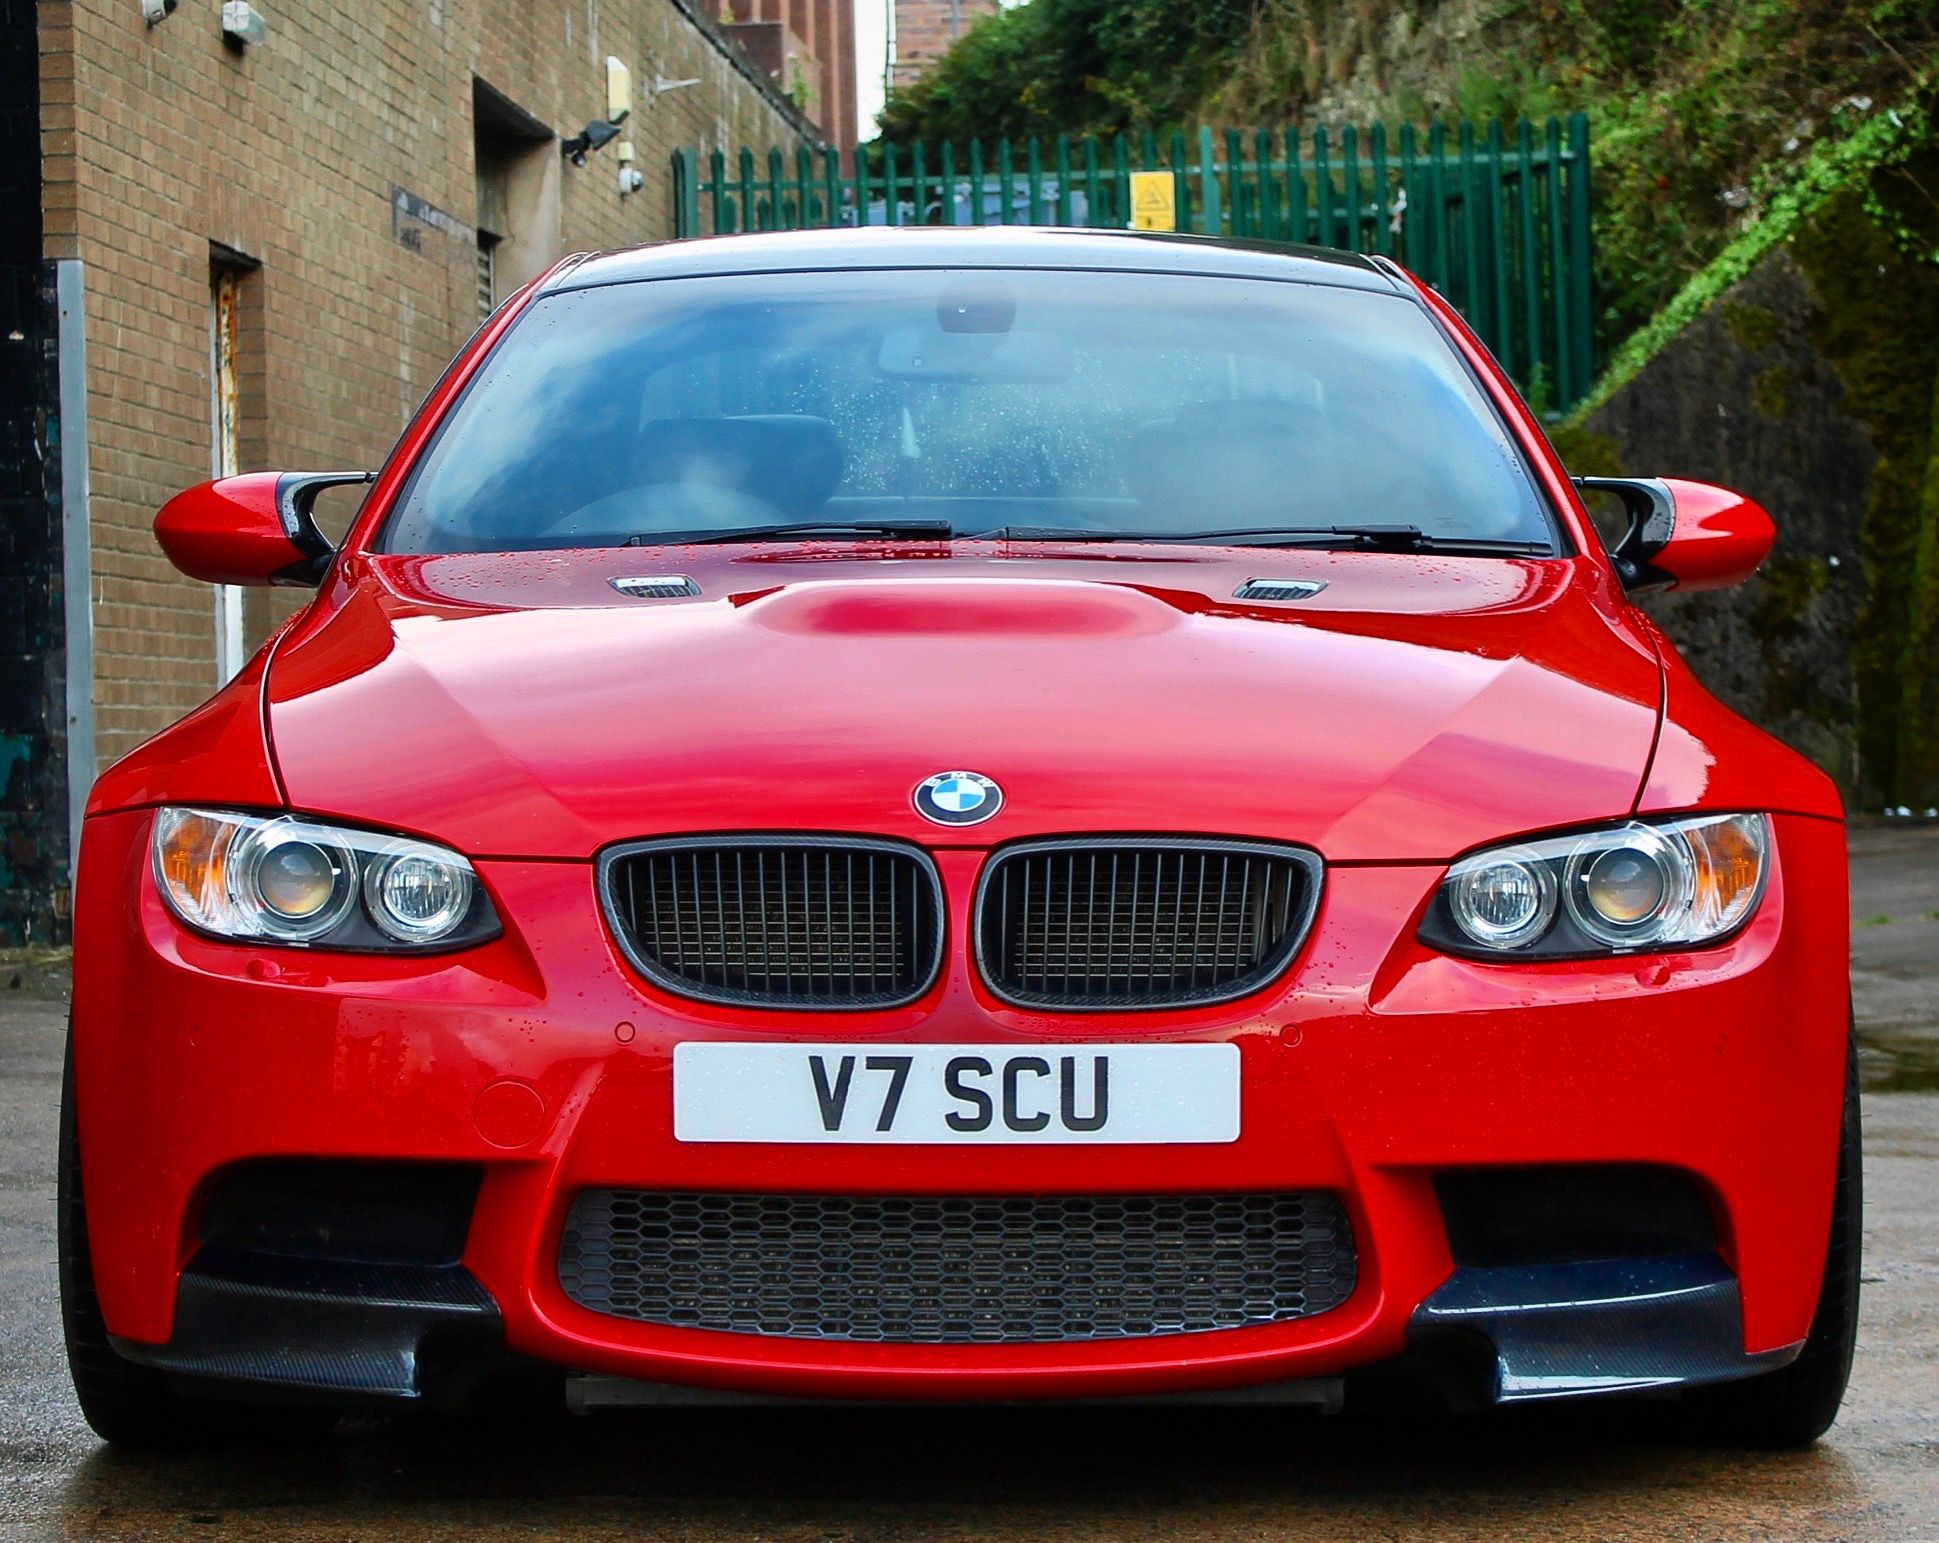 2012 bmw e92 m3 individual japan red 1 of 37 competition pack edc [ 1939 x 1543 Pixel ]